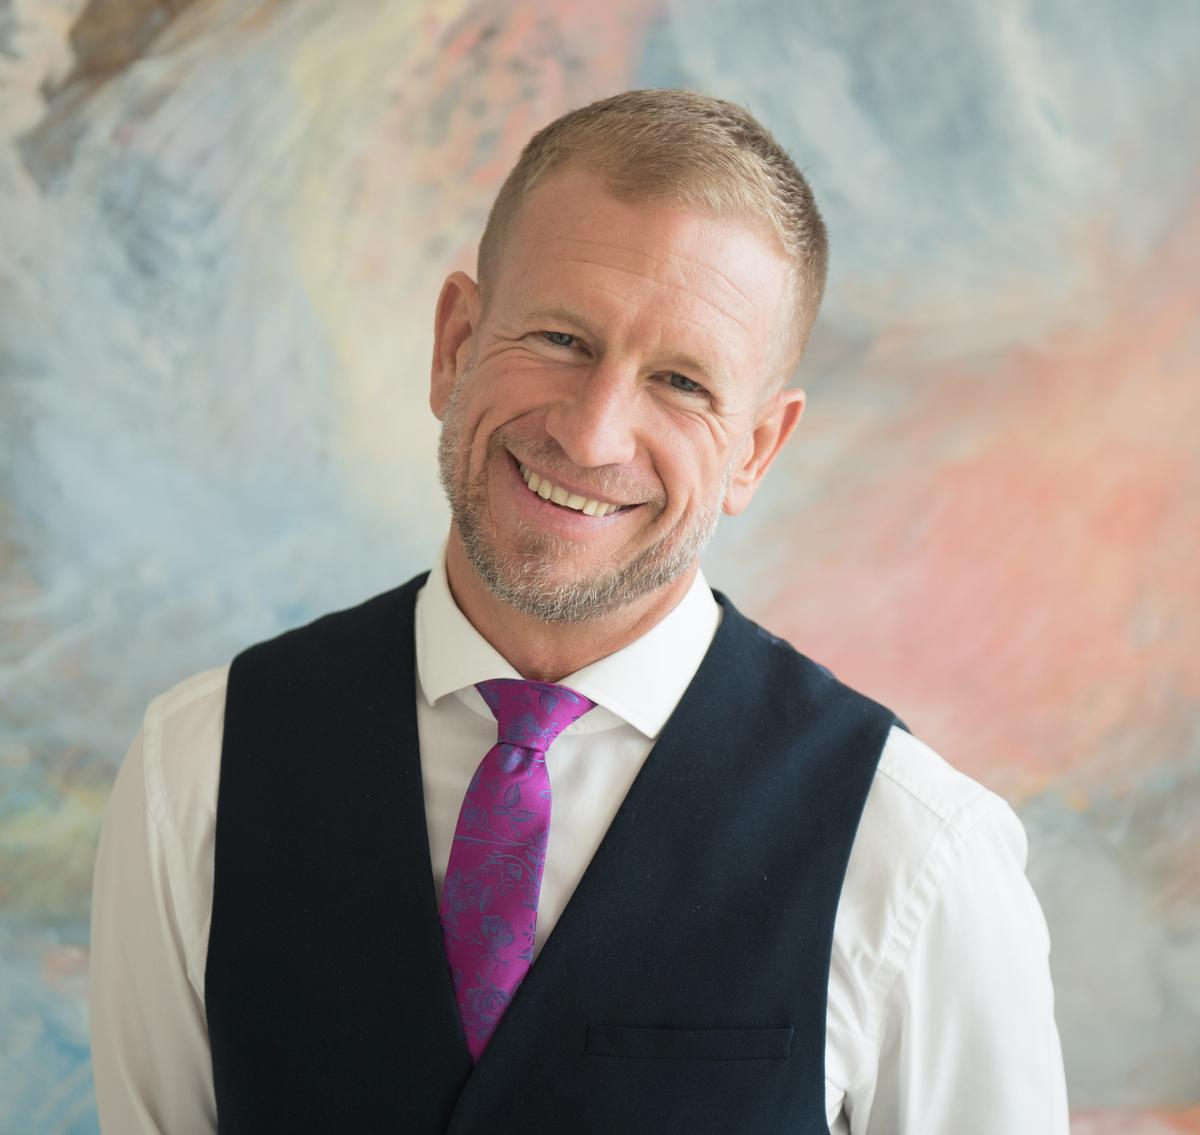 Spa Opportunities: - Exclusive: Bryan Hoare named GM of ESPA's